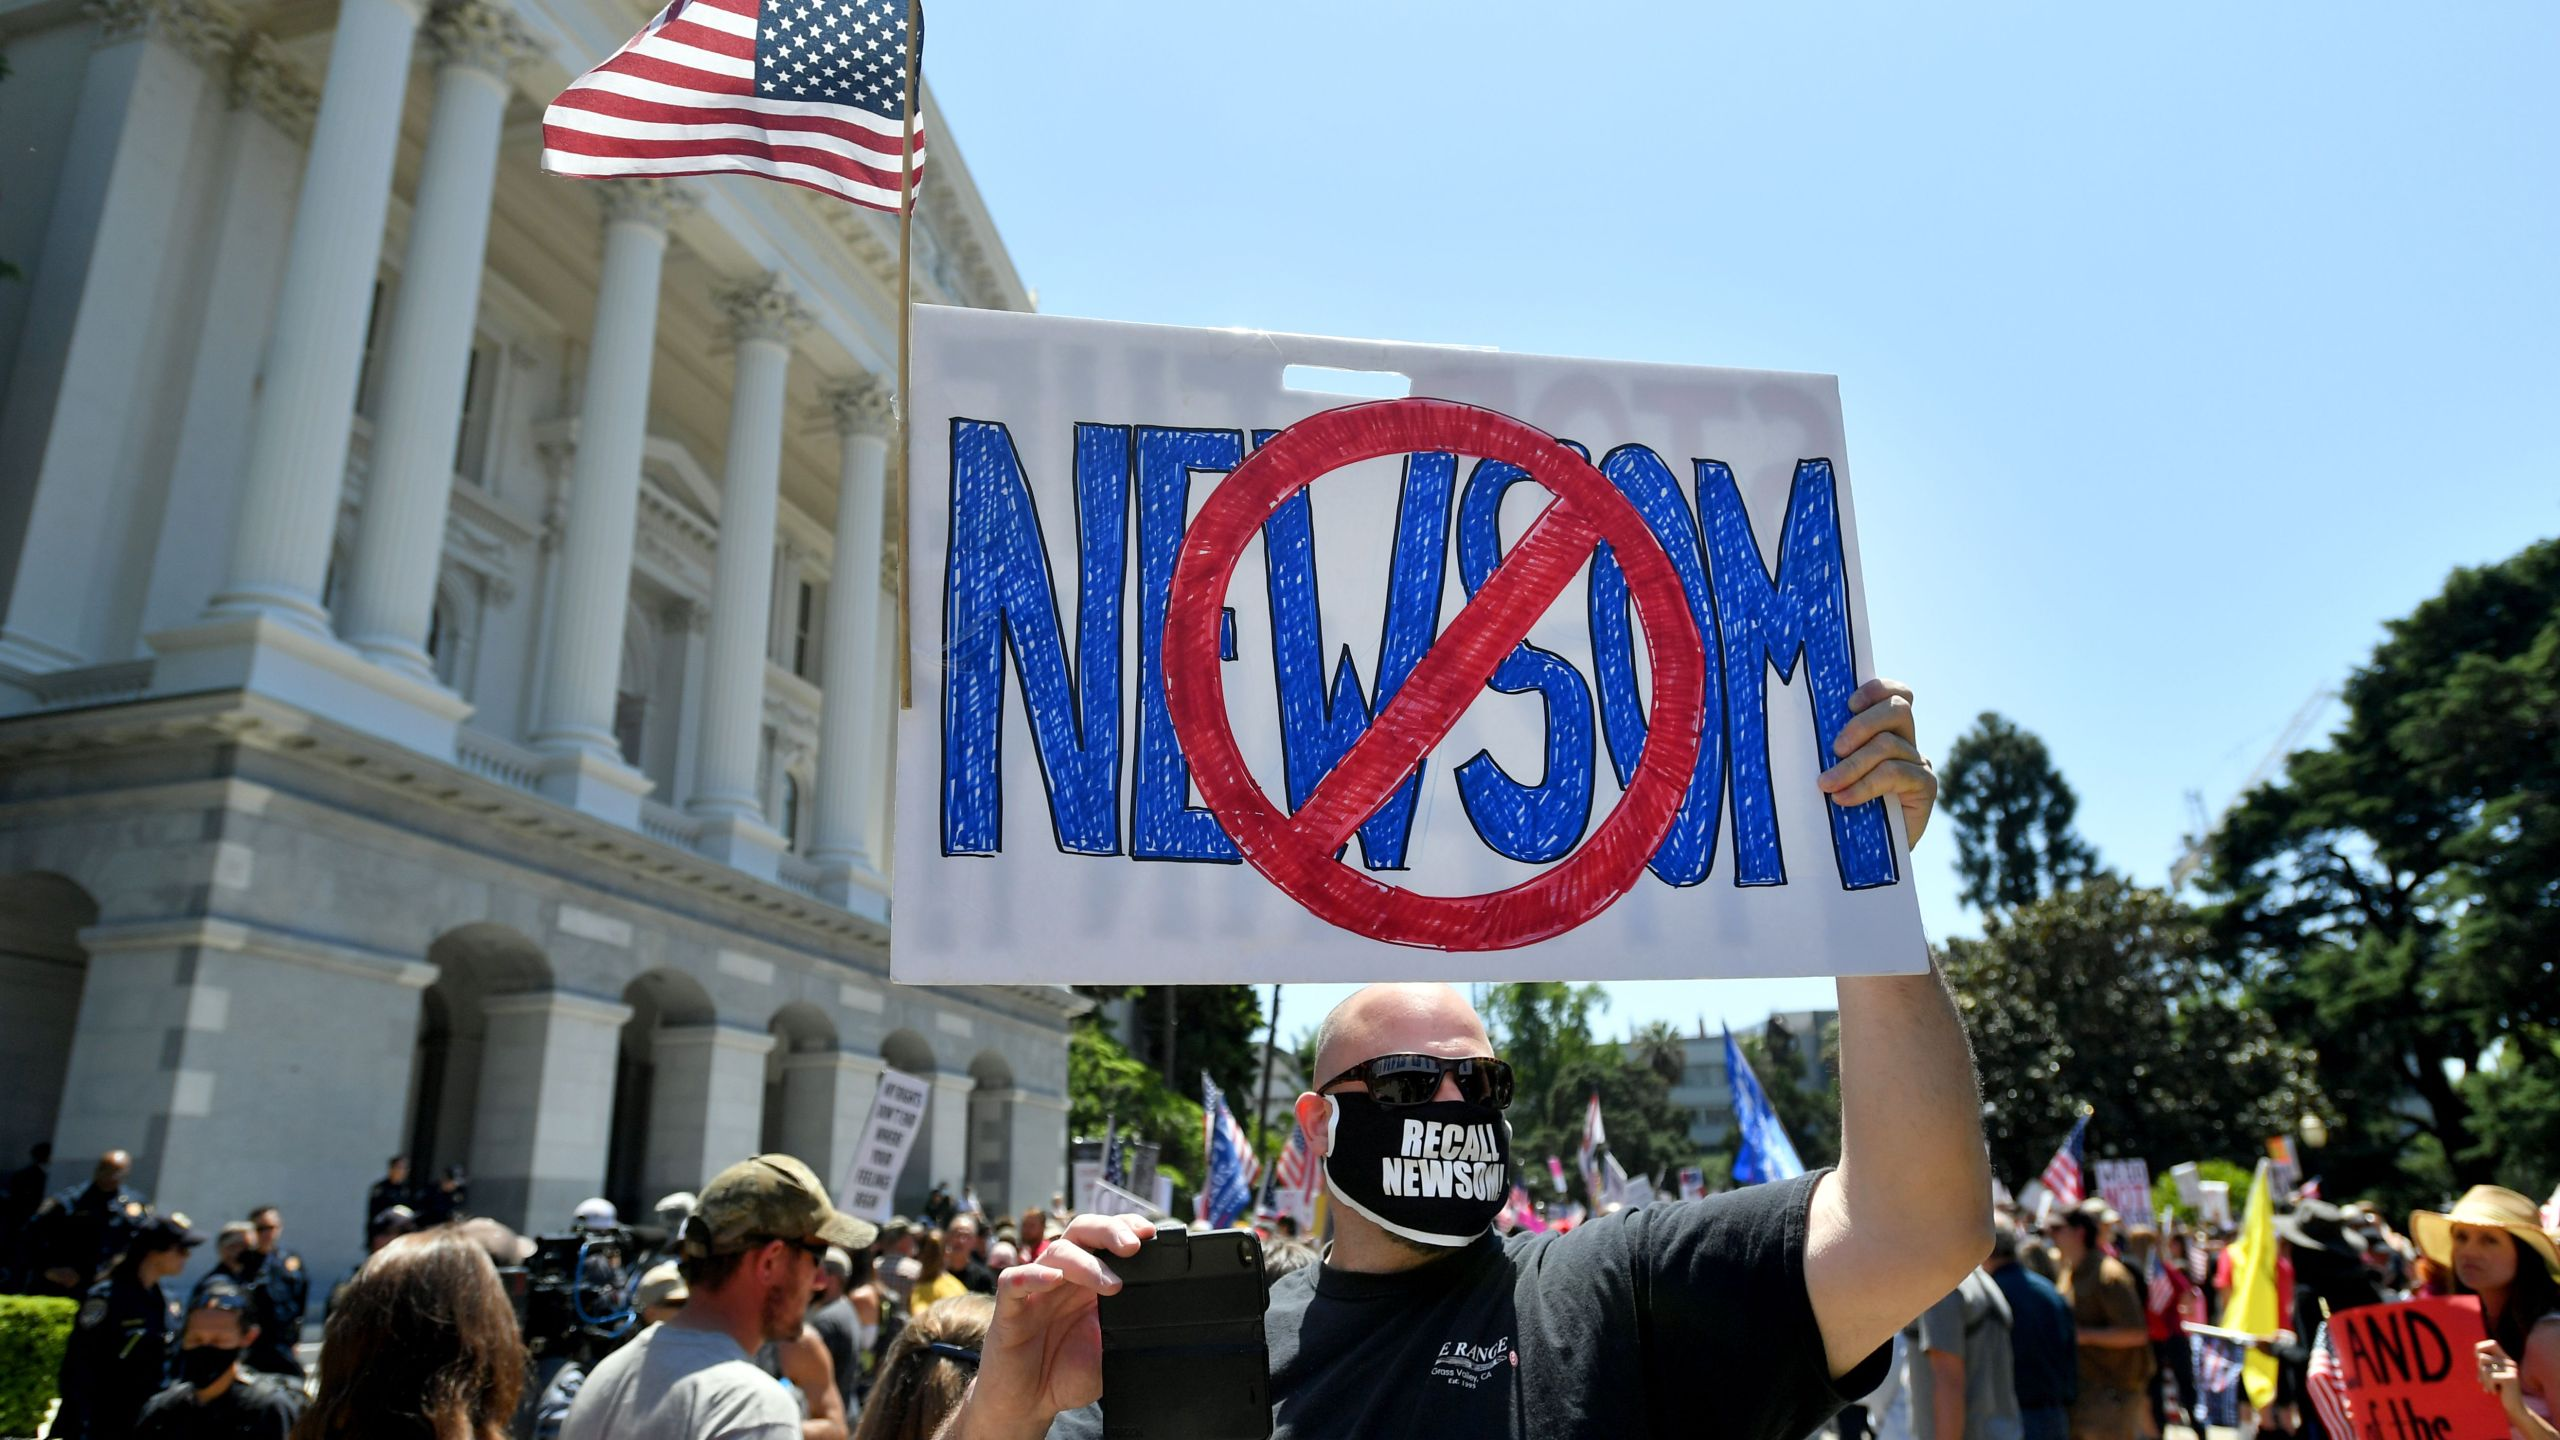 People gather to protest the stay-at-home orders outside the state capitol building in Sacramento, California on May 1, 2020. (JOSH EDELSON/AFP via Getty Images)